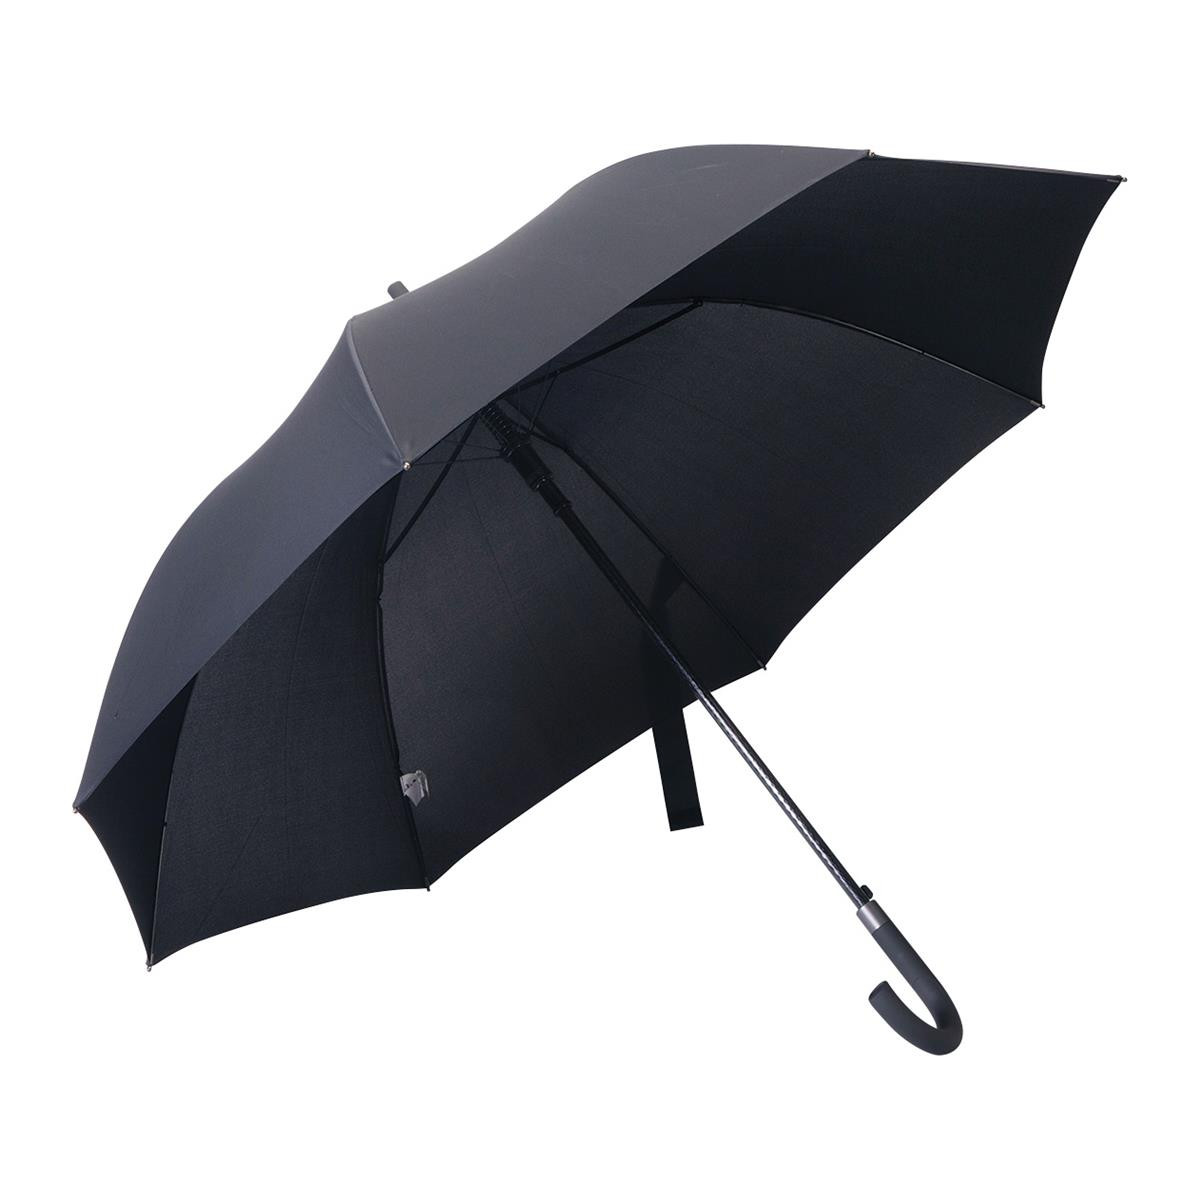 2125 Umbra - Corporate Hook Umbrella / Fibreglass Shaft / Auto Open